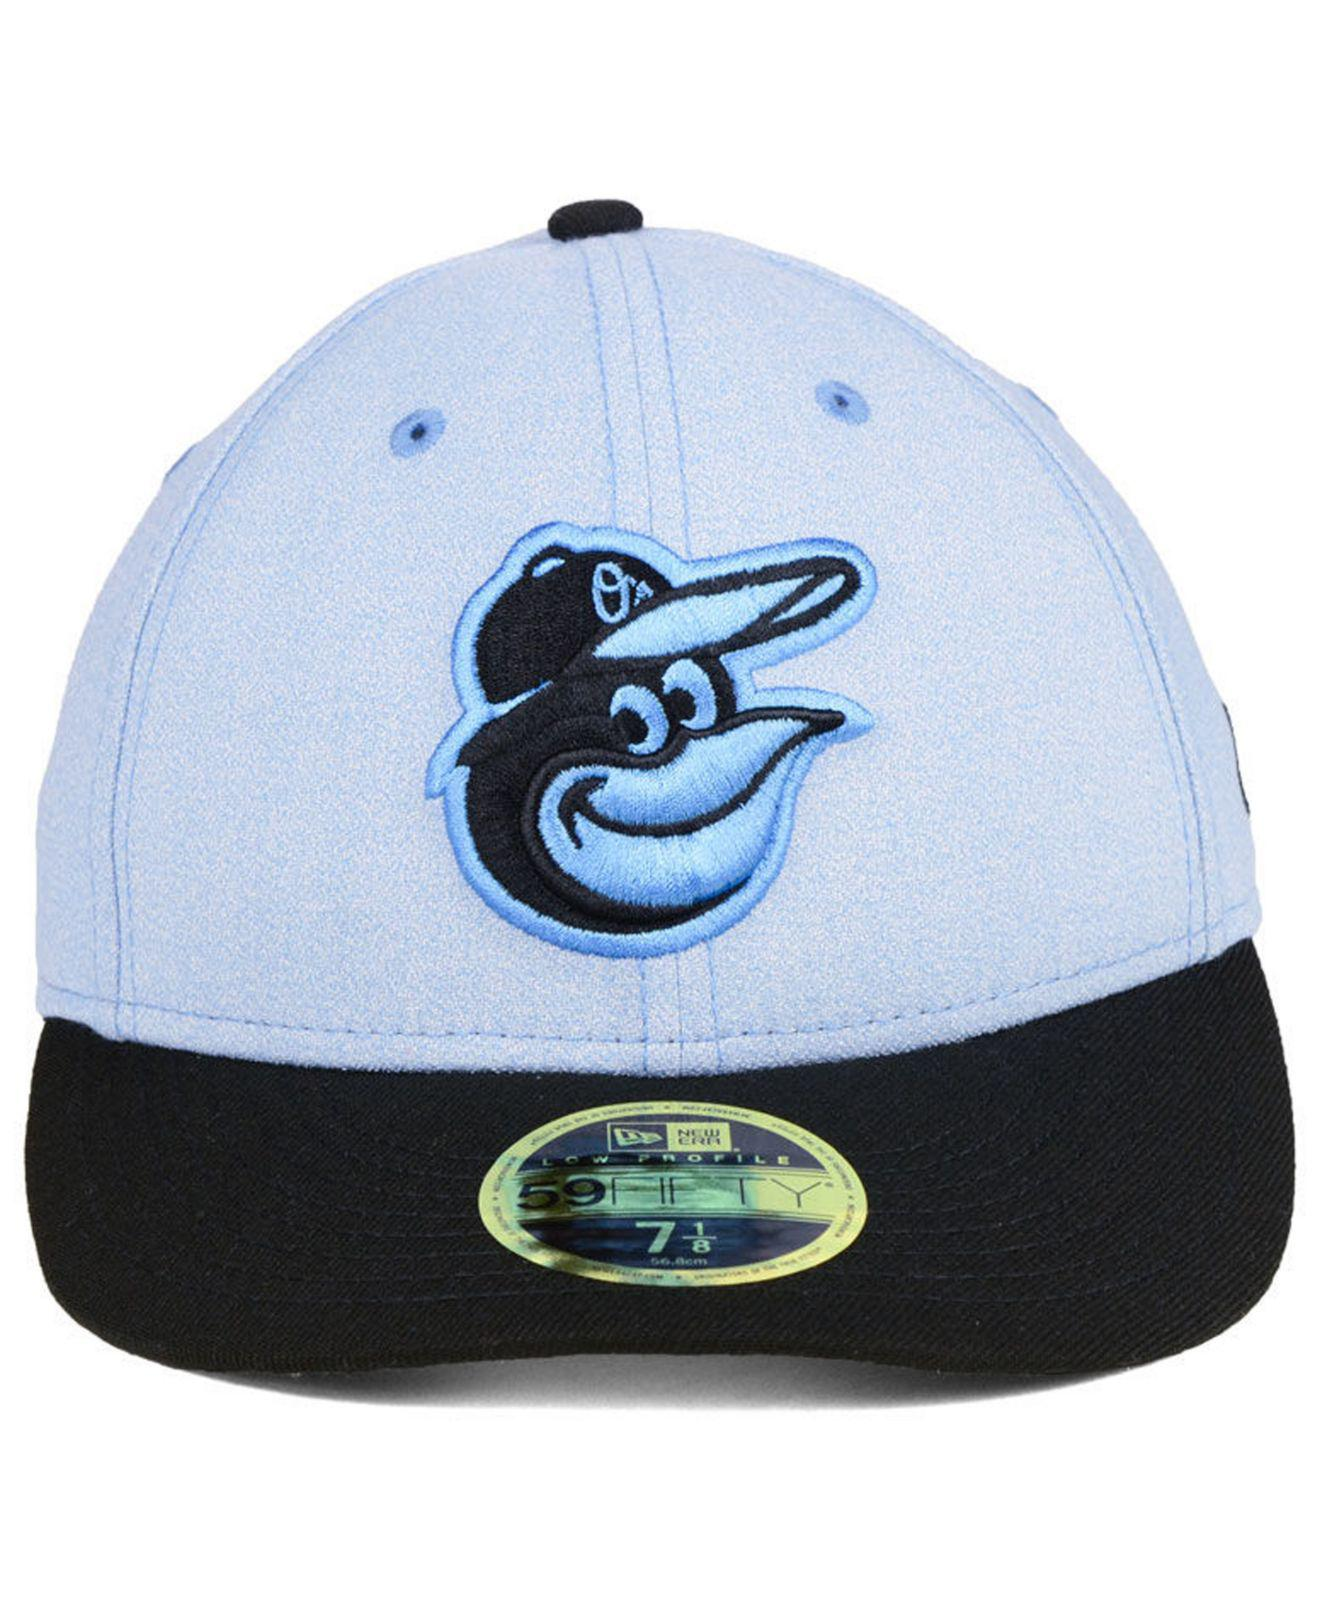 huge selection of b0e1a 6507d ... buy lyst ktz baltimore orioles fathers day low profile 59fifty cap in  blue for men c61c4